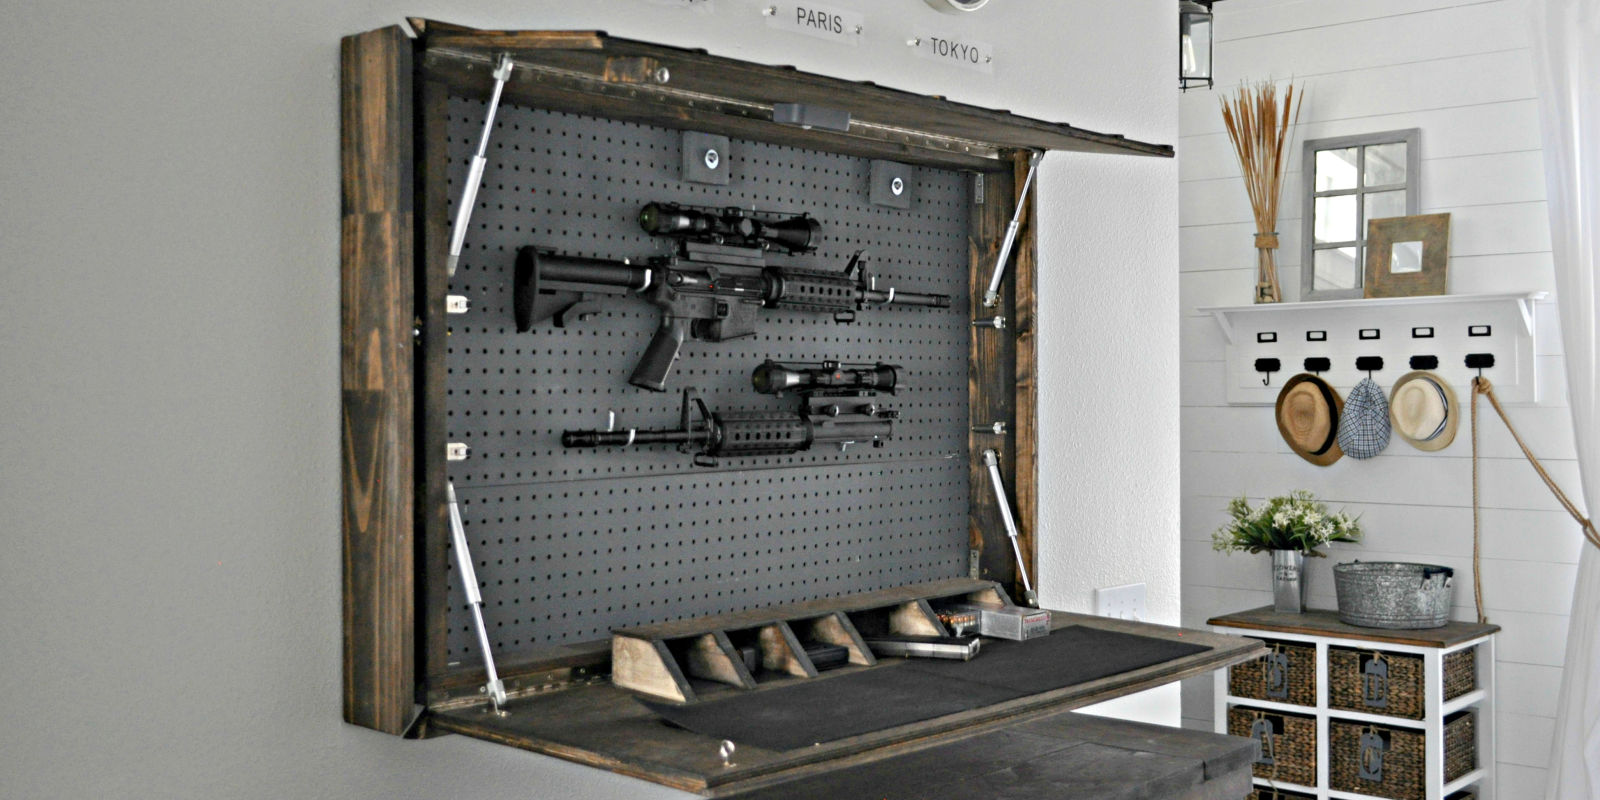 Prepossessing 10 wall safe mirror decorating inspiration for How to build a gun safe room